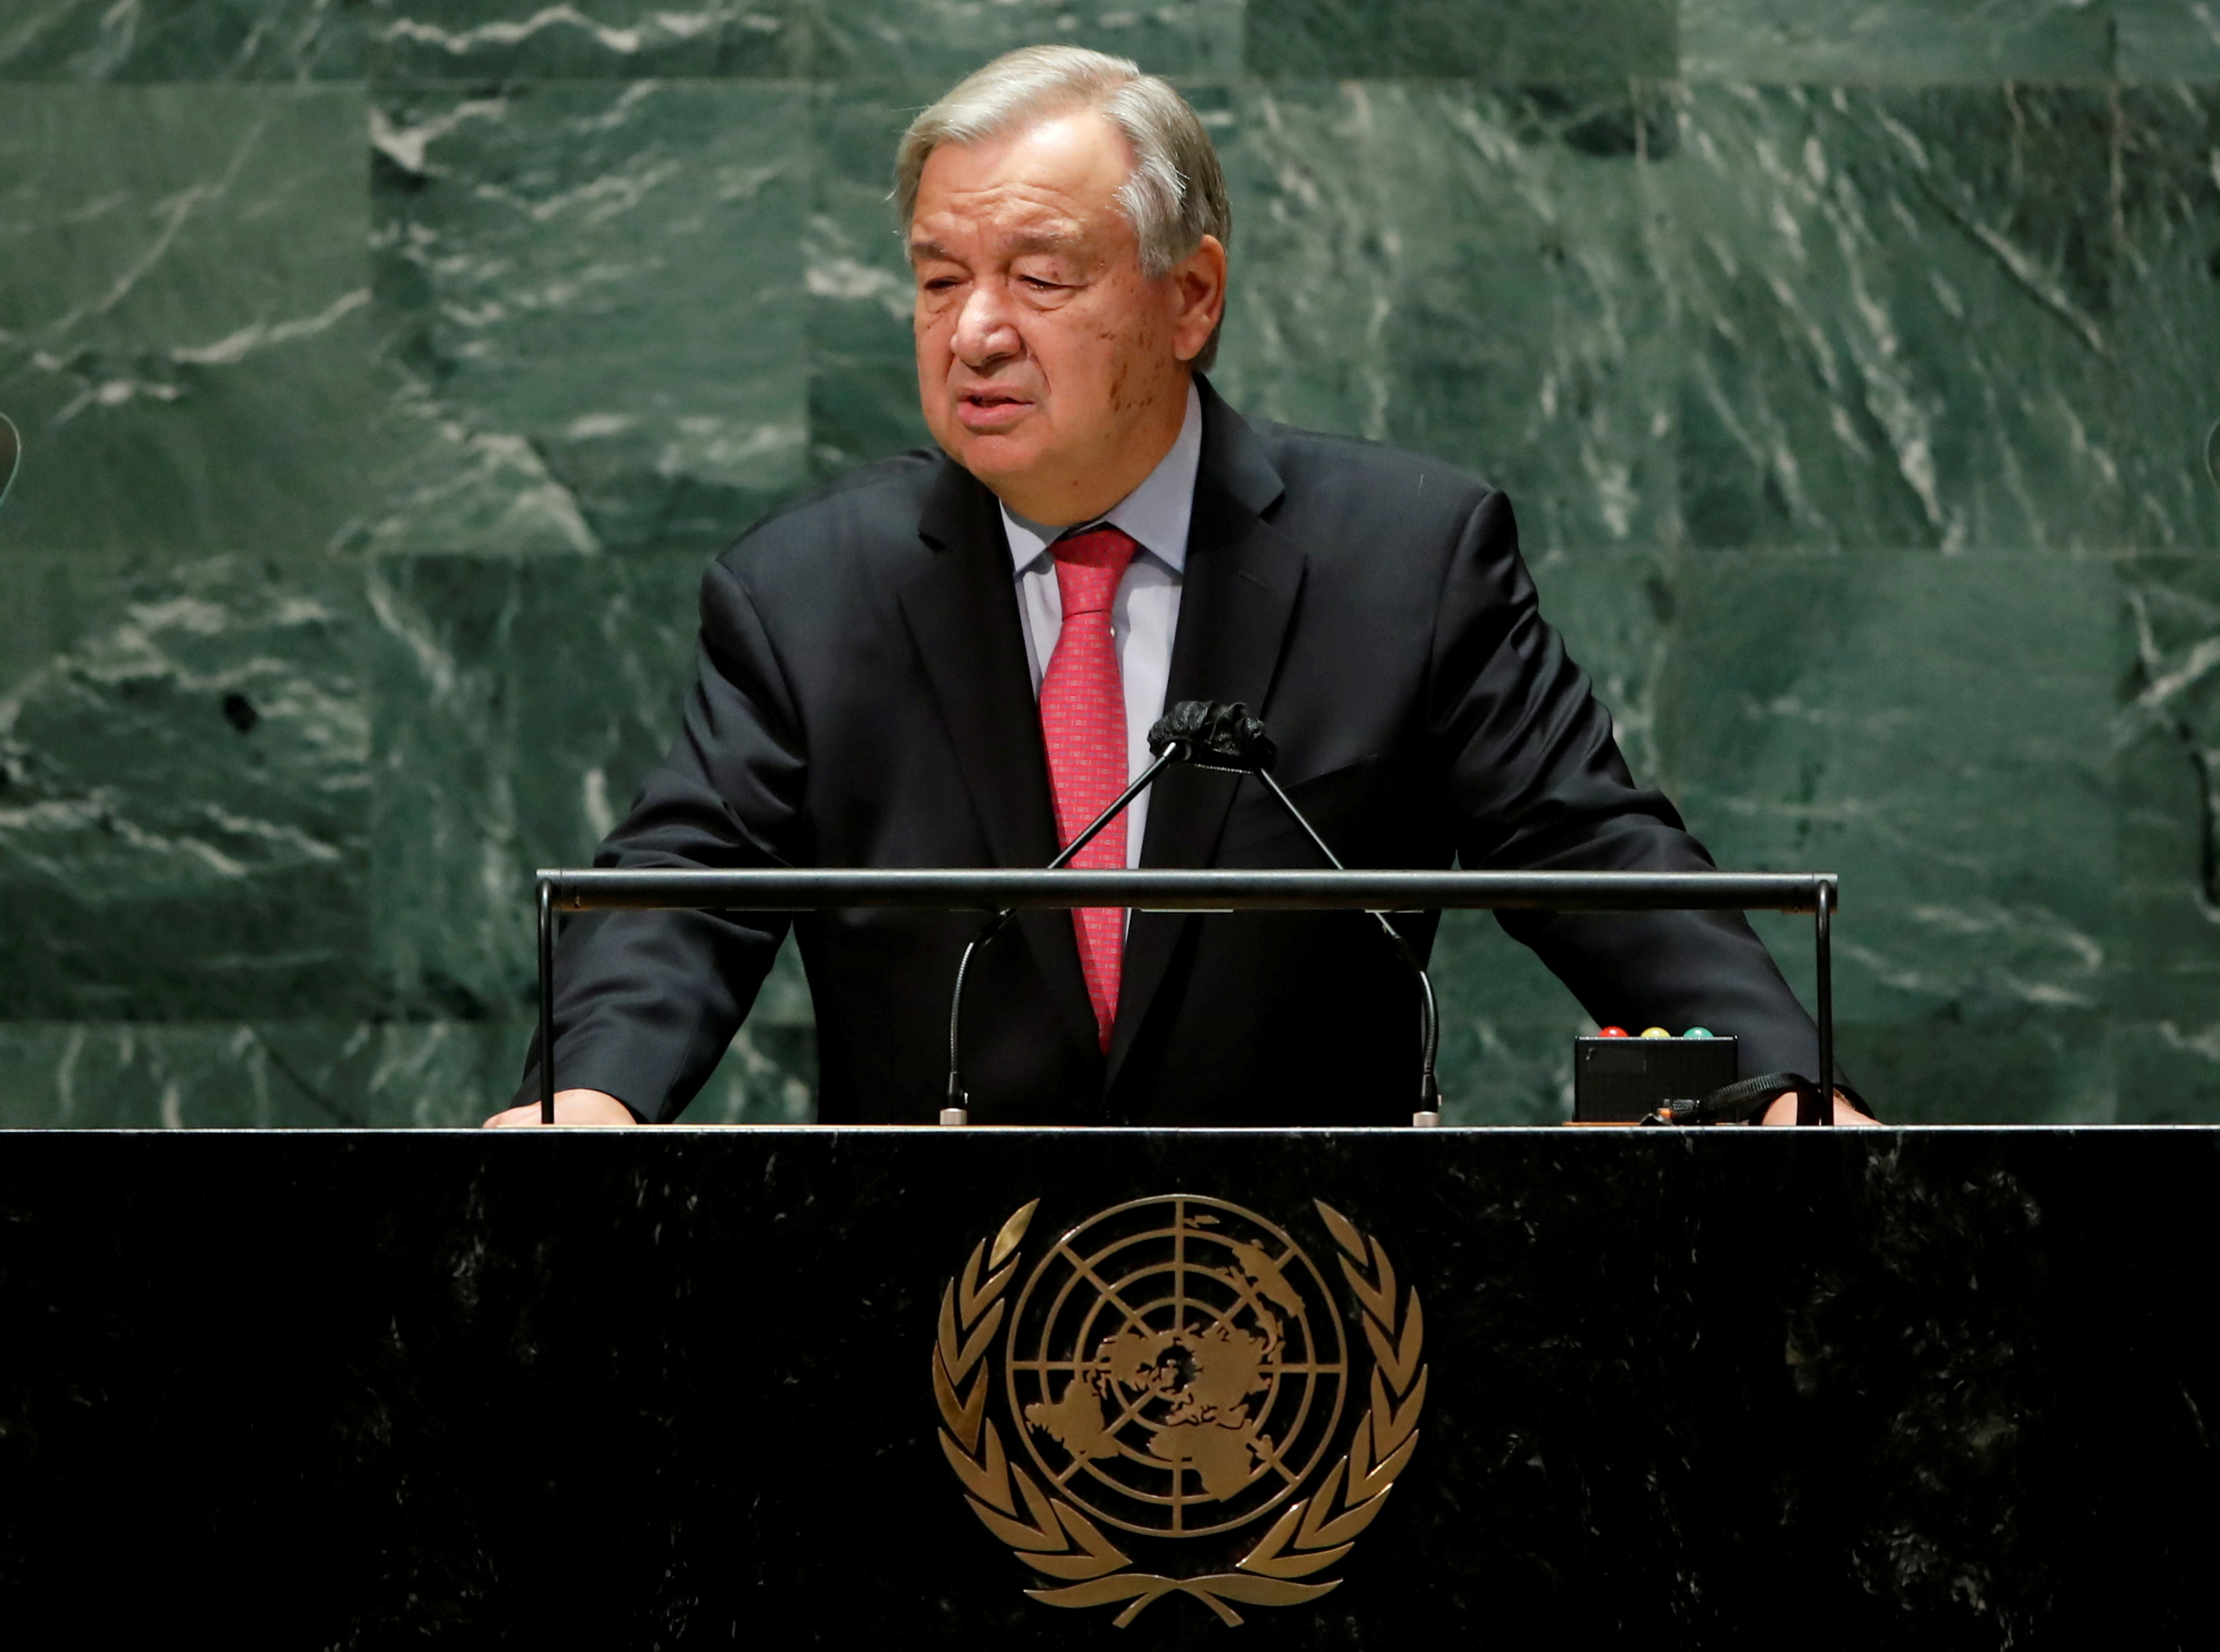 United Nations Secretary-General Antonio Guterres addresses the 76th Session of the U.N. General Assembly in New York City, U.S., September 21, 2021.  REUTERS/Eduardo Munoz/Pool//File Photo